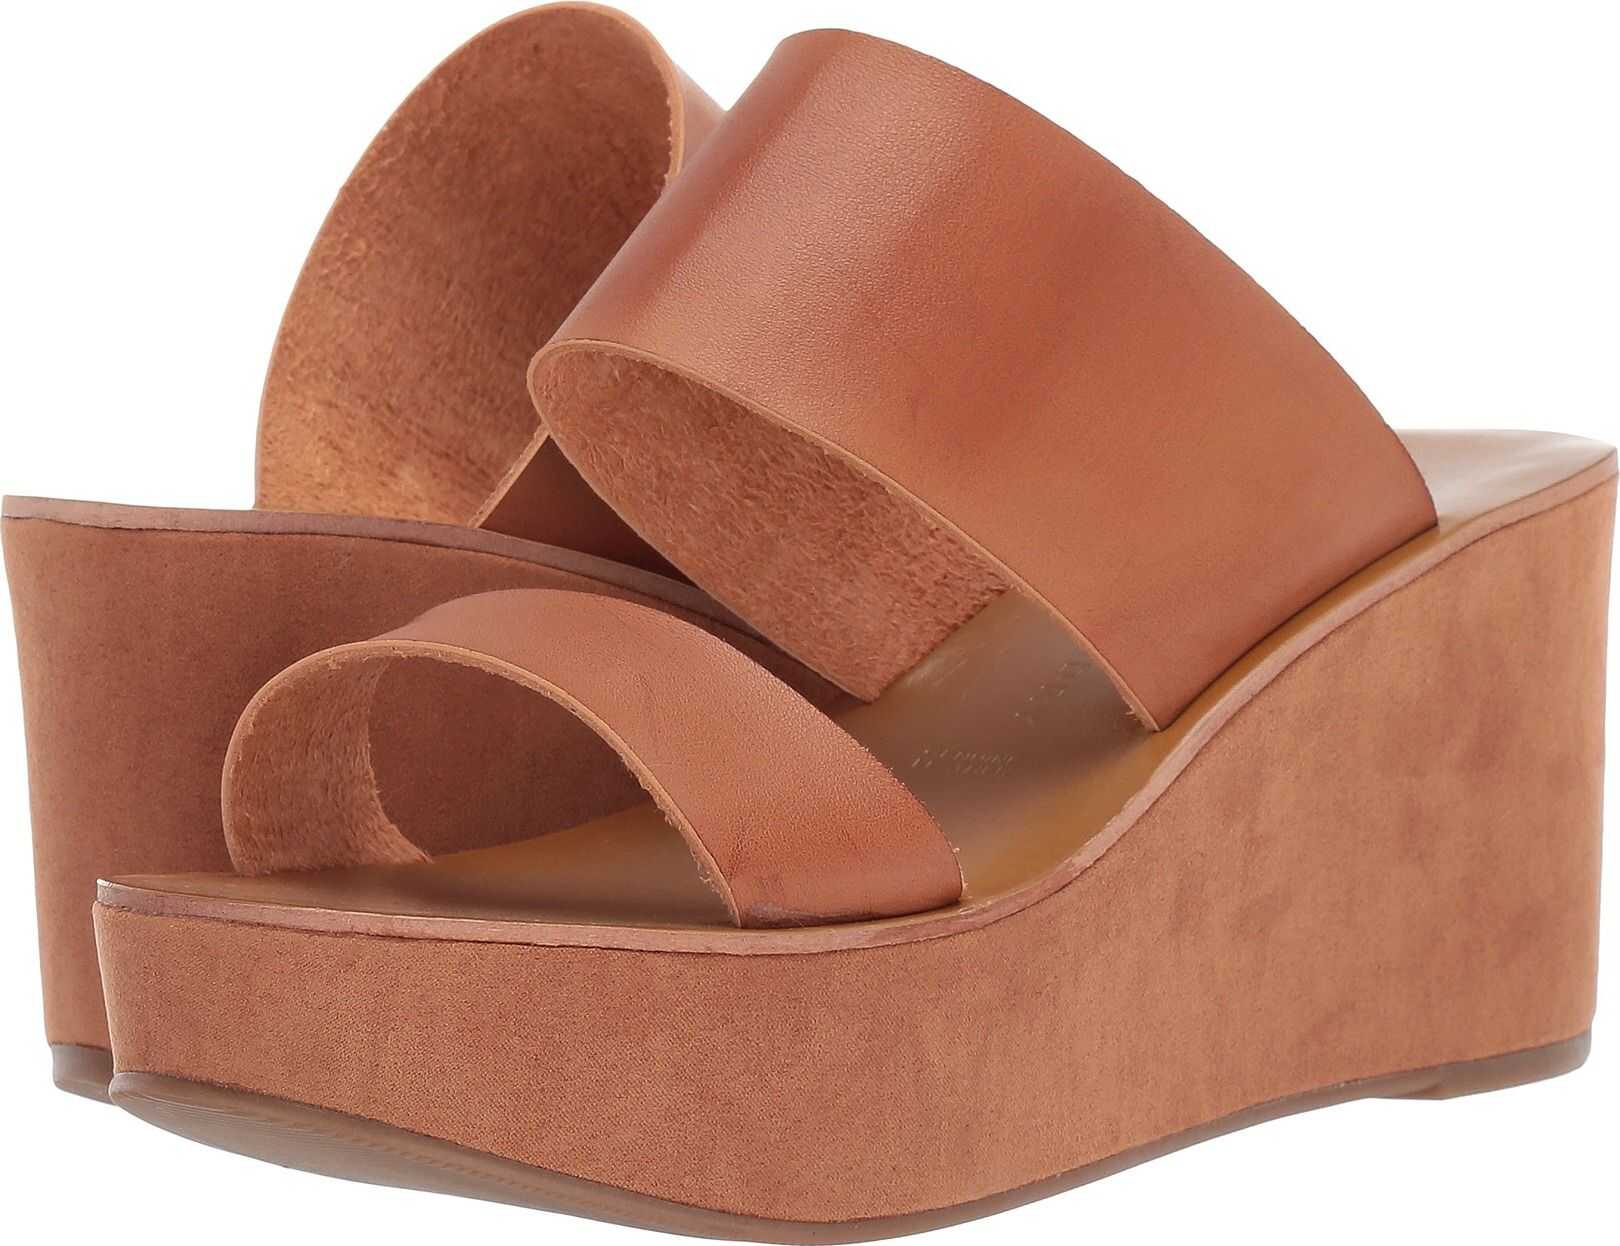 Chinese Laundry Ollie Sandal Saddle Solid